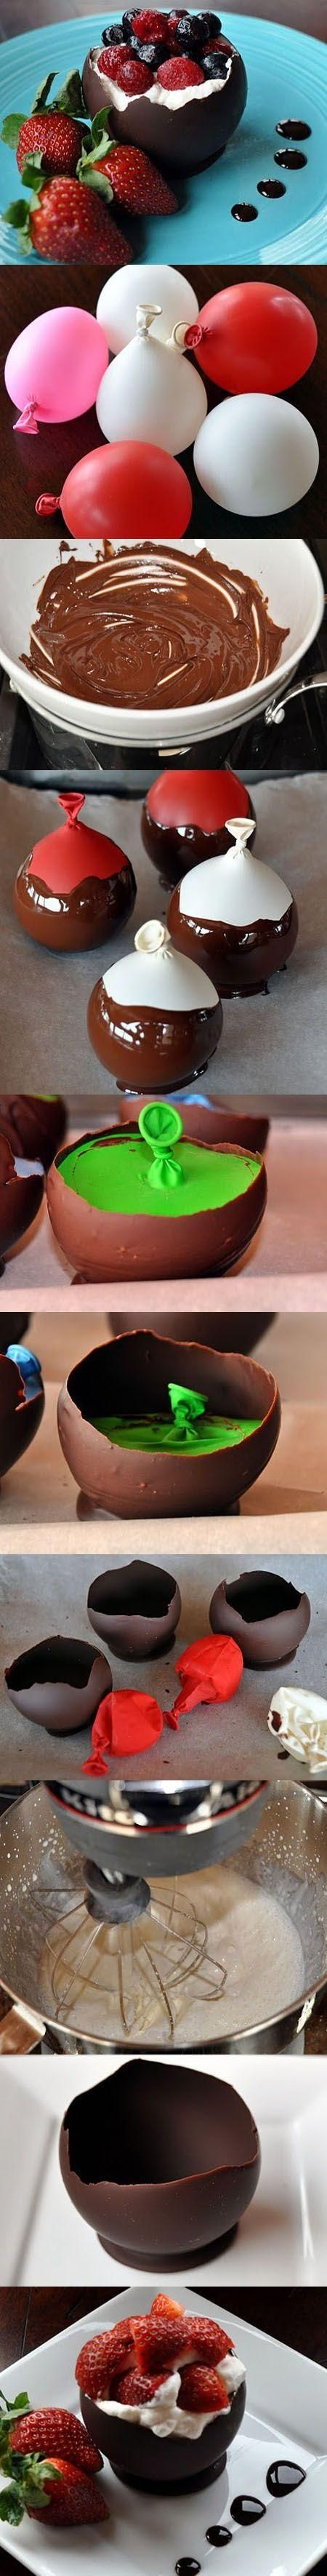 Best 25+ Chocolate balloon bowl ideas only on Pinterest ...